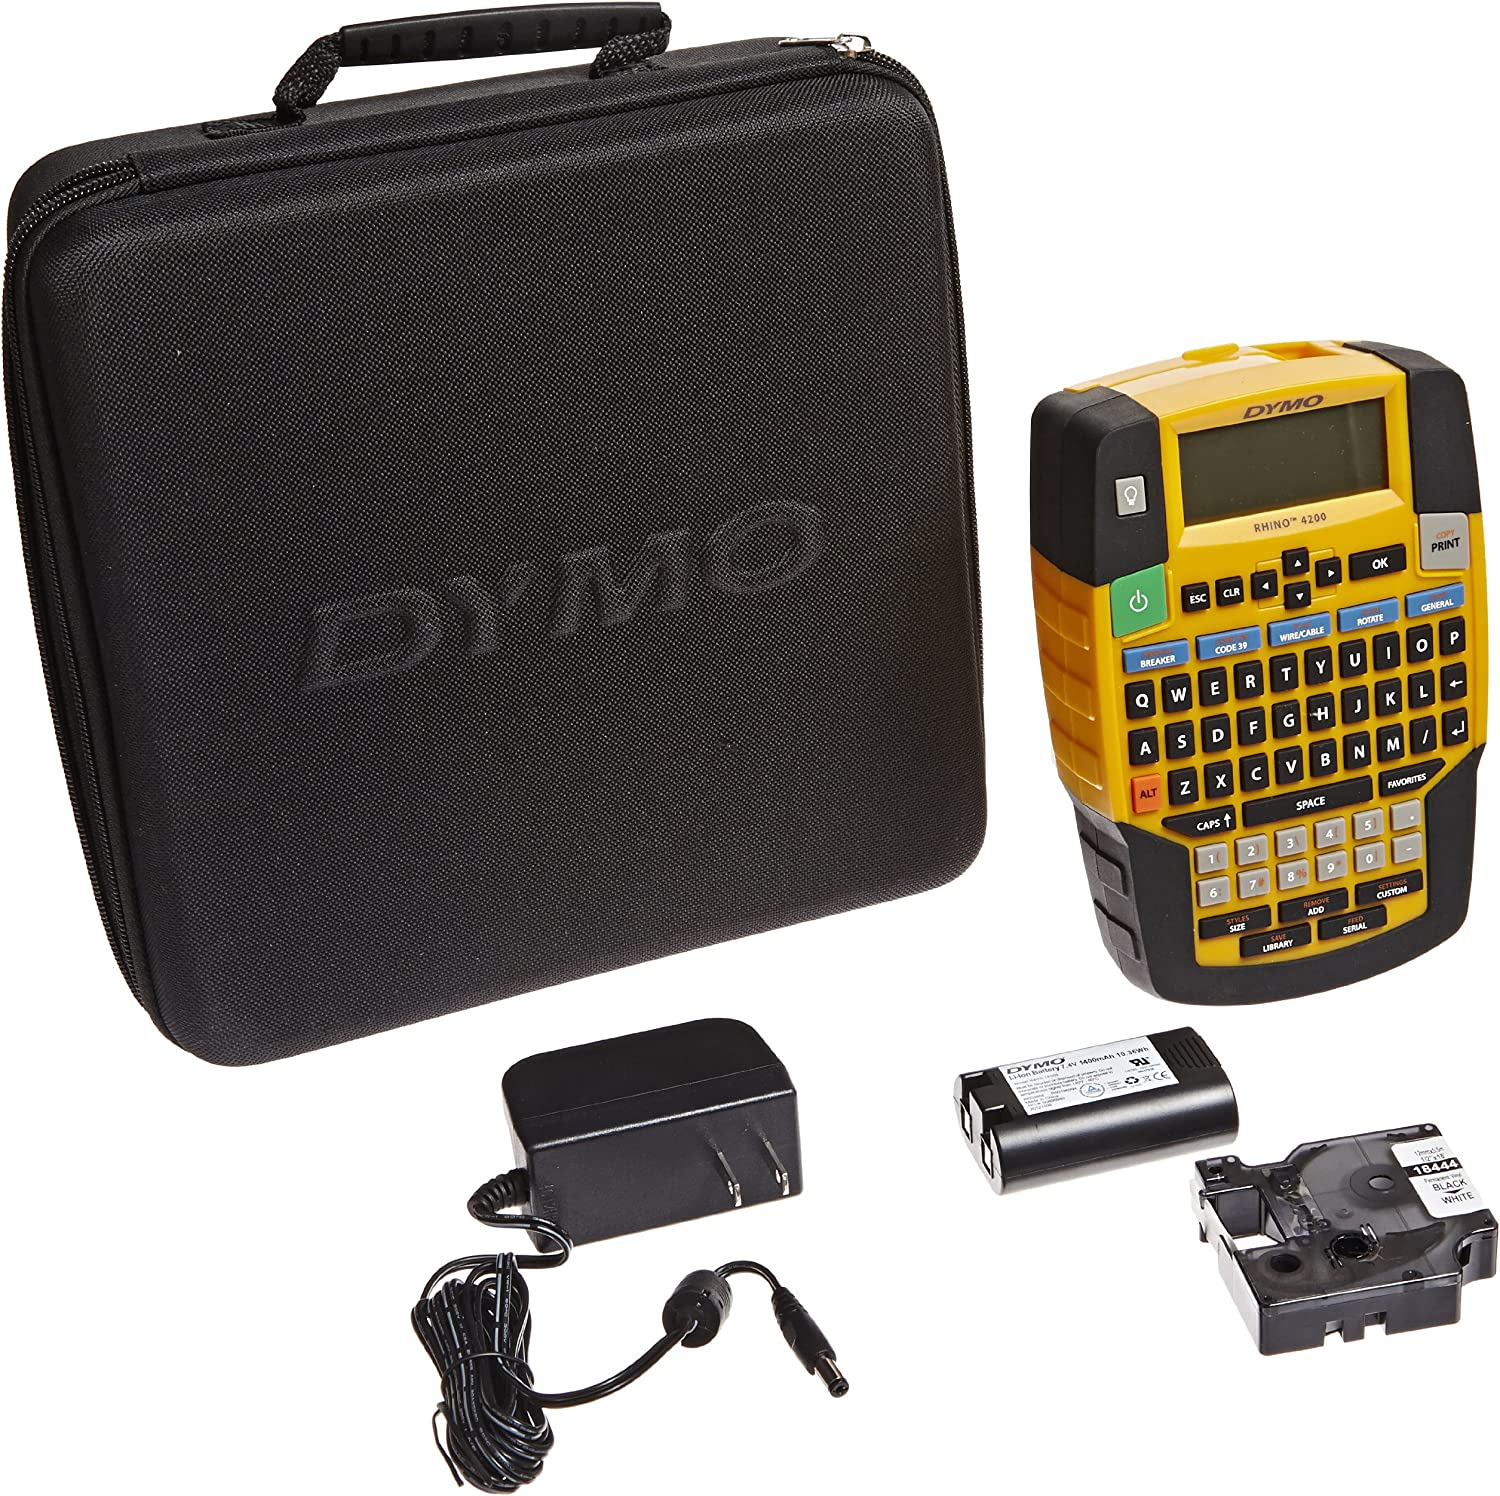 DYMO Rhino 4200 Industrial Label Maker Carry Case with Roll of 1/2 All-Purpose Vinyl Labels, Black on White (1835374)